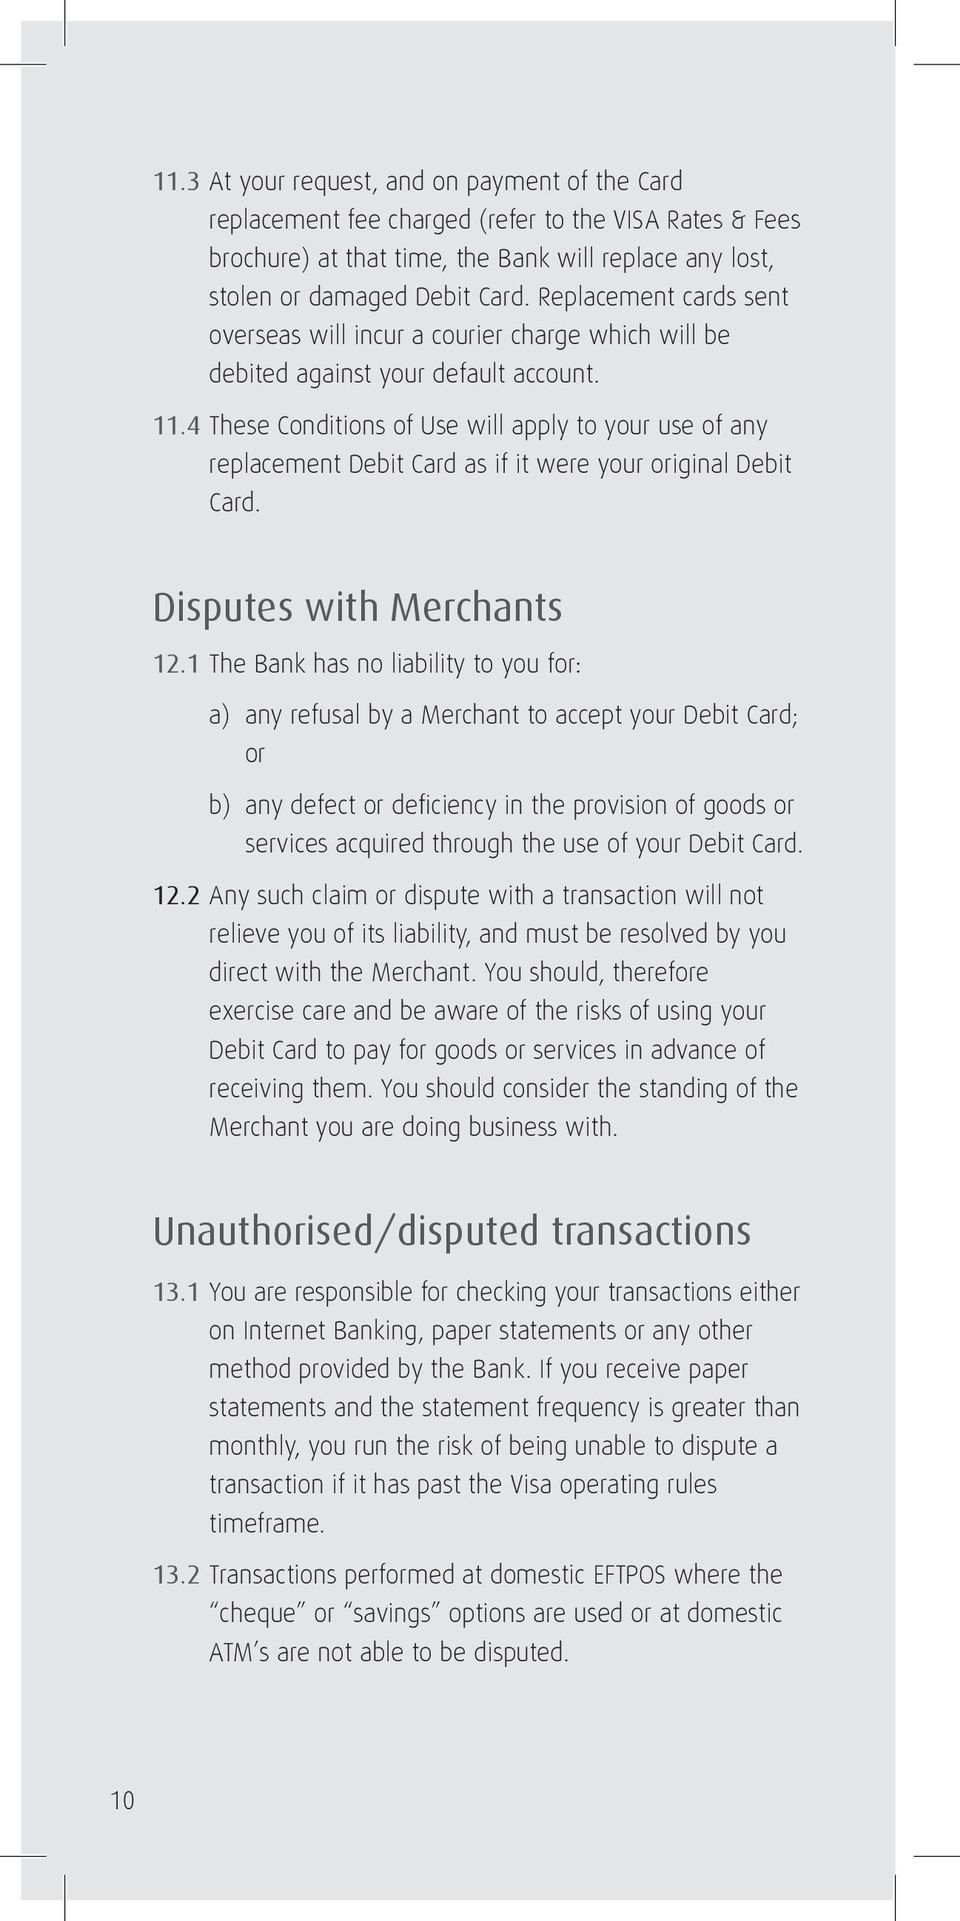 4 These Conditions of Use will apply to your use of any replacement Debit Card as if it were your original Debit Card. Disputes with Merchants 12.